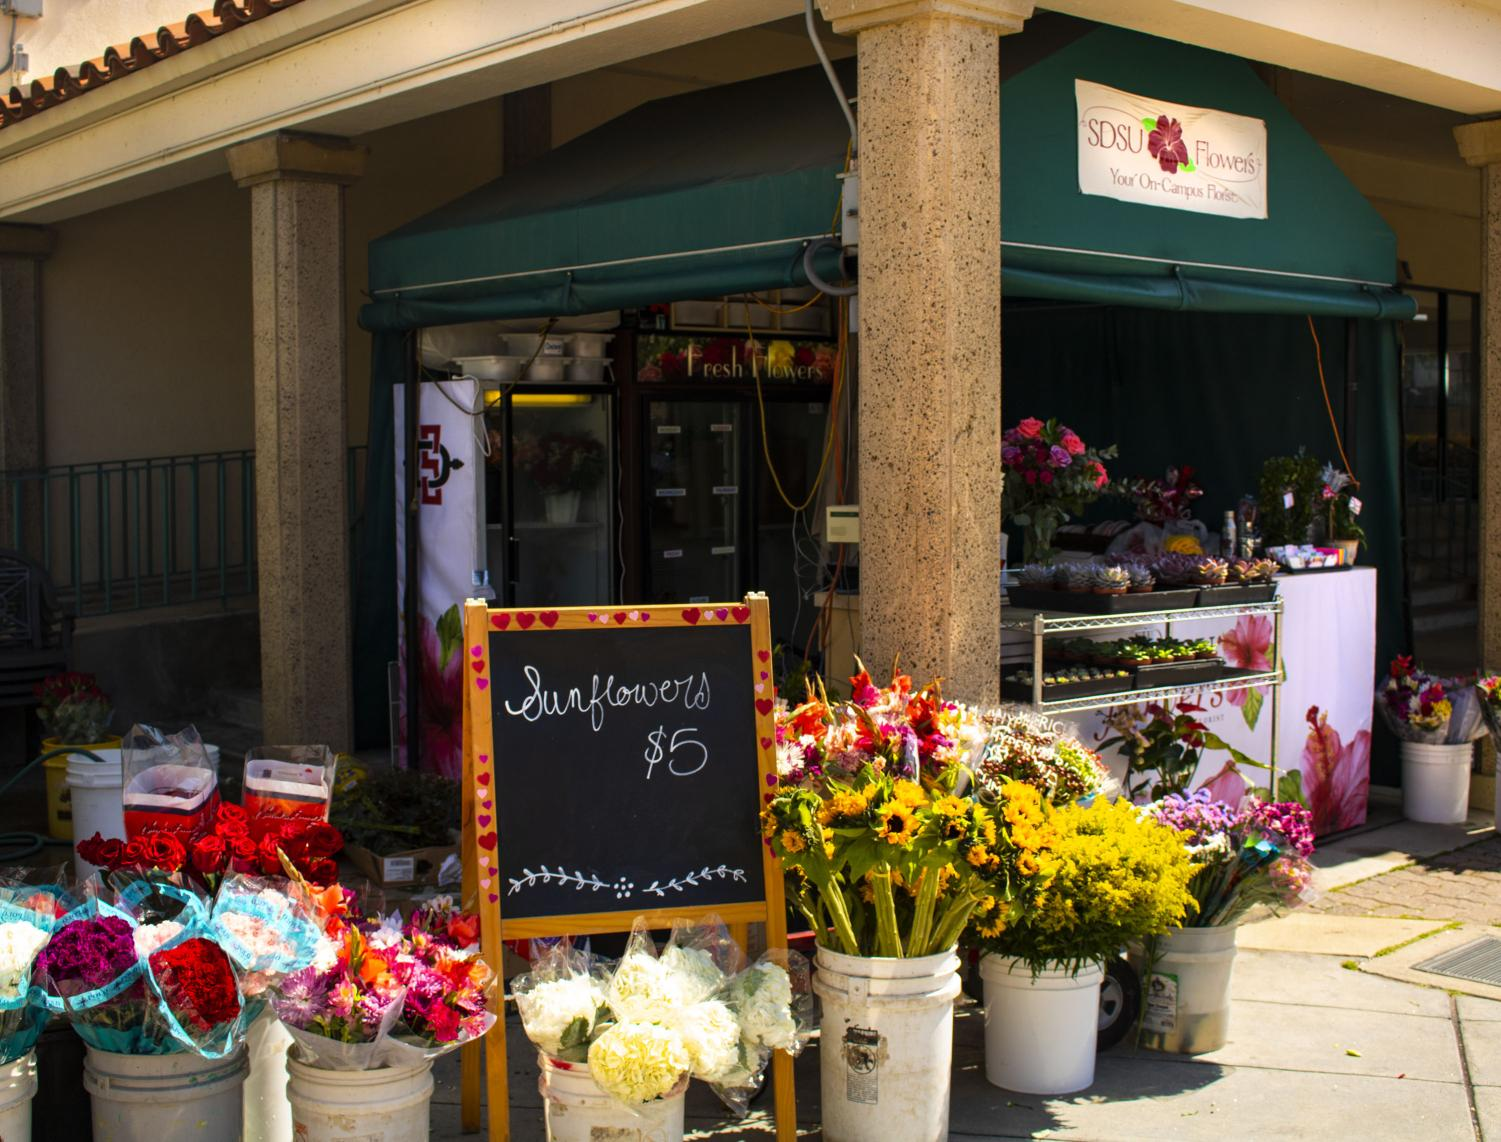 The campus flower stand has transitioned ownership to become SDSU Flowers.